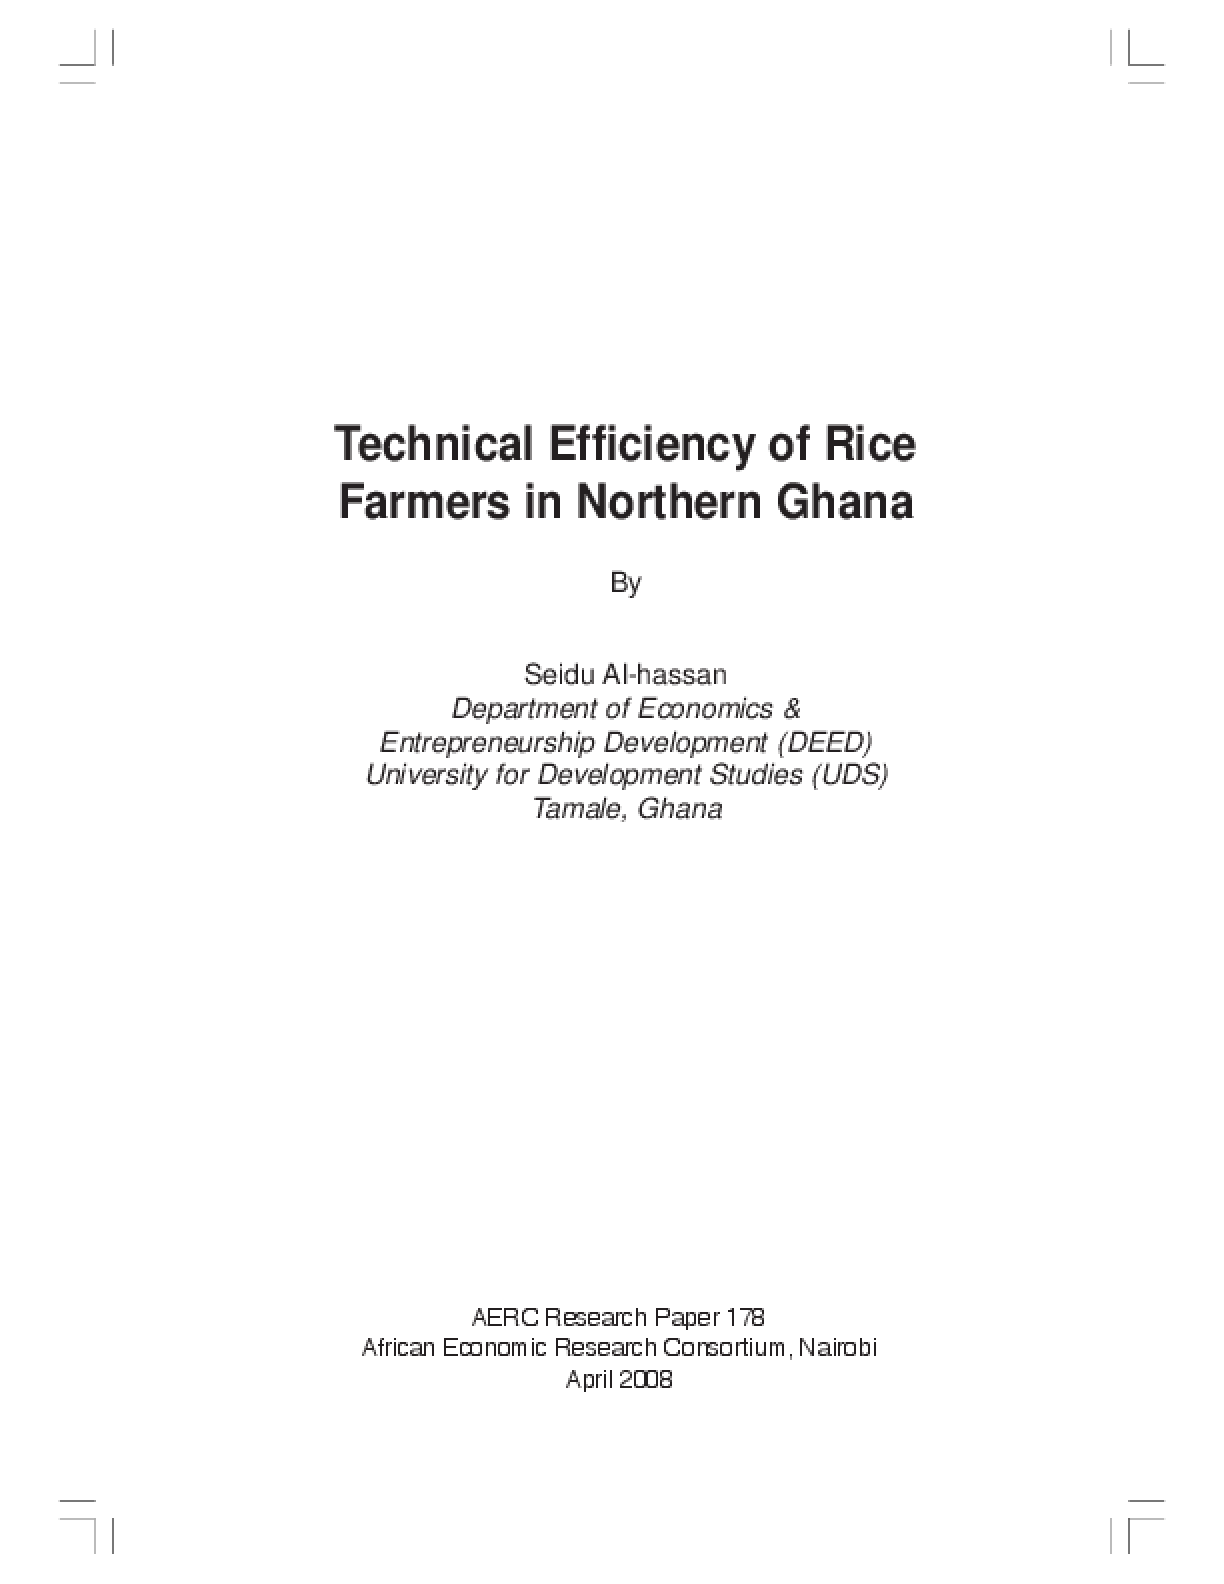 Technical Efficiency of Rice Farmers in Northern Ghana